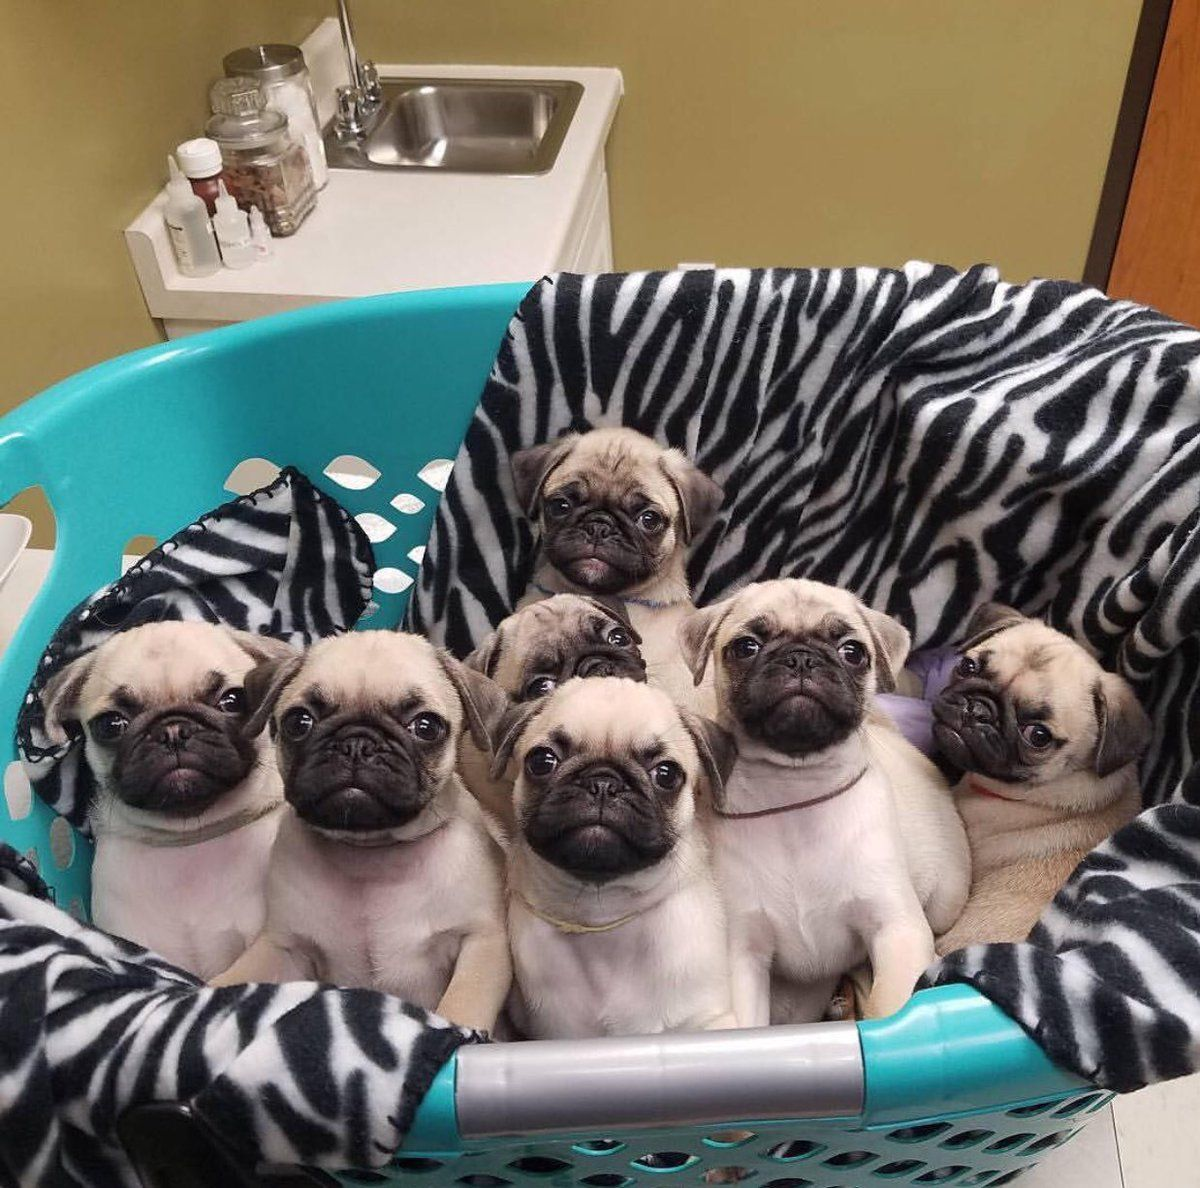 Adopt A Pug Twitter Search Cute Pugs Baby Pugs Cute Pug Puppies